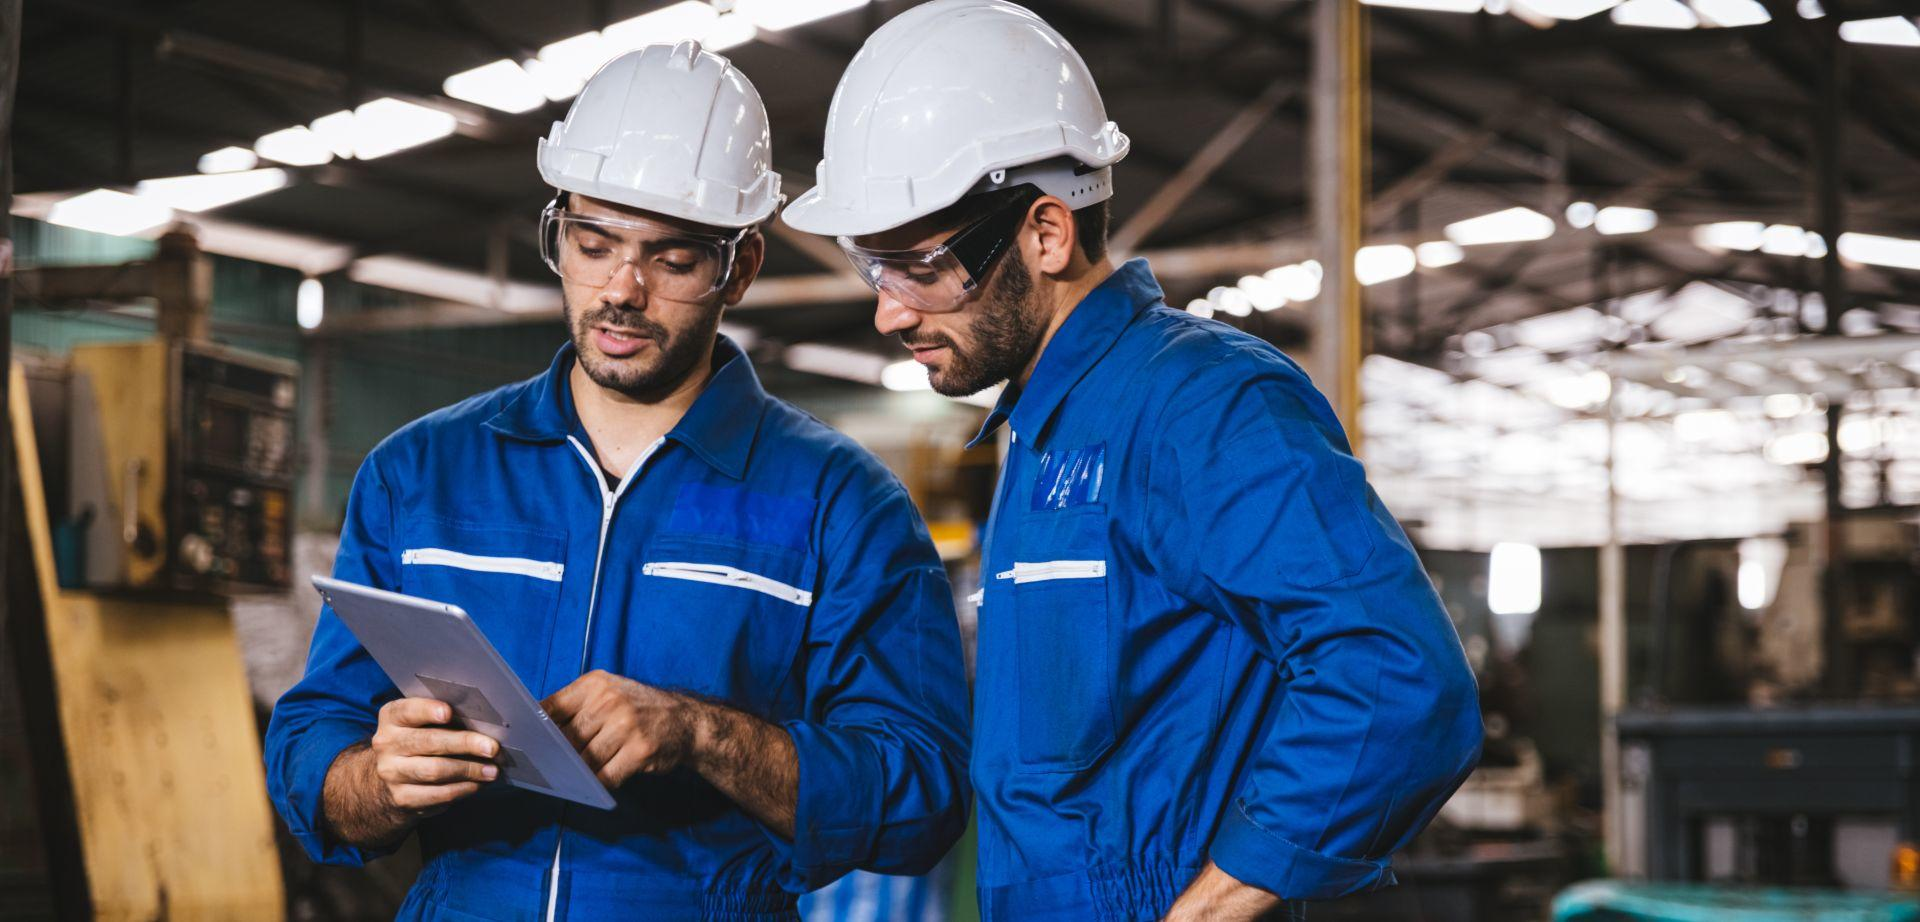 2 new NEBOSH classroom courses available!